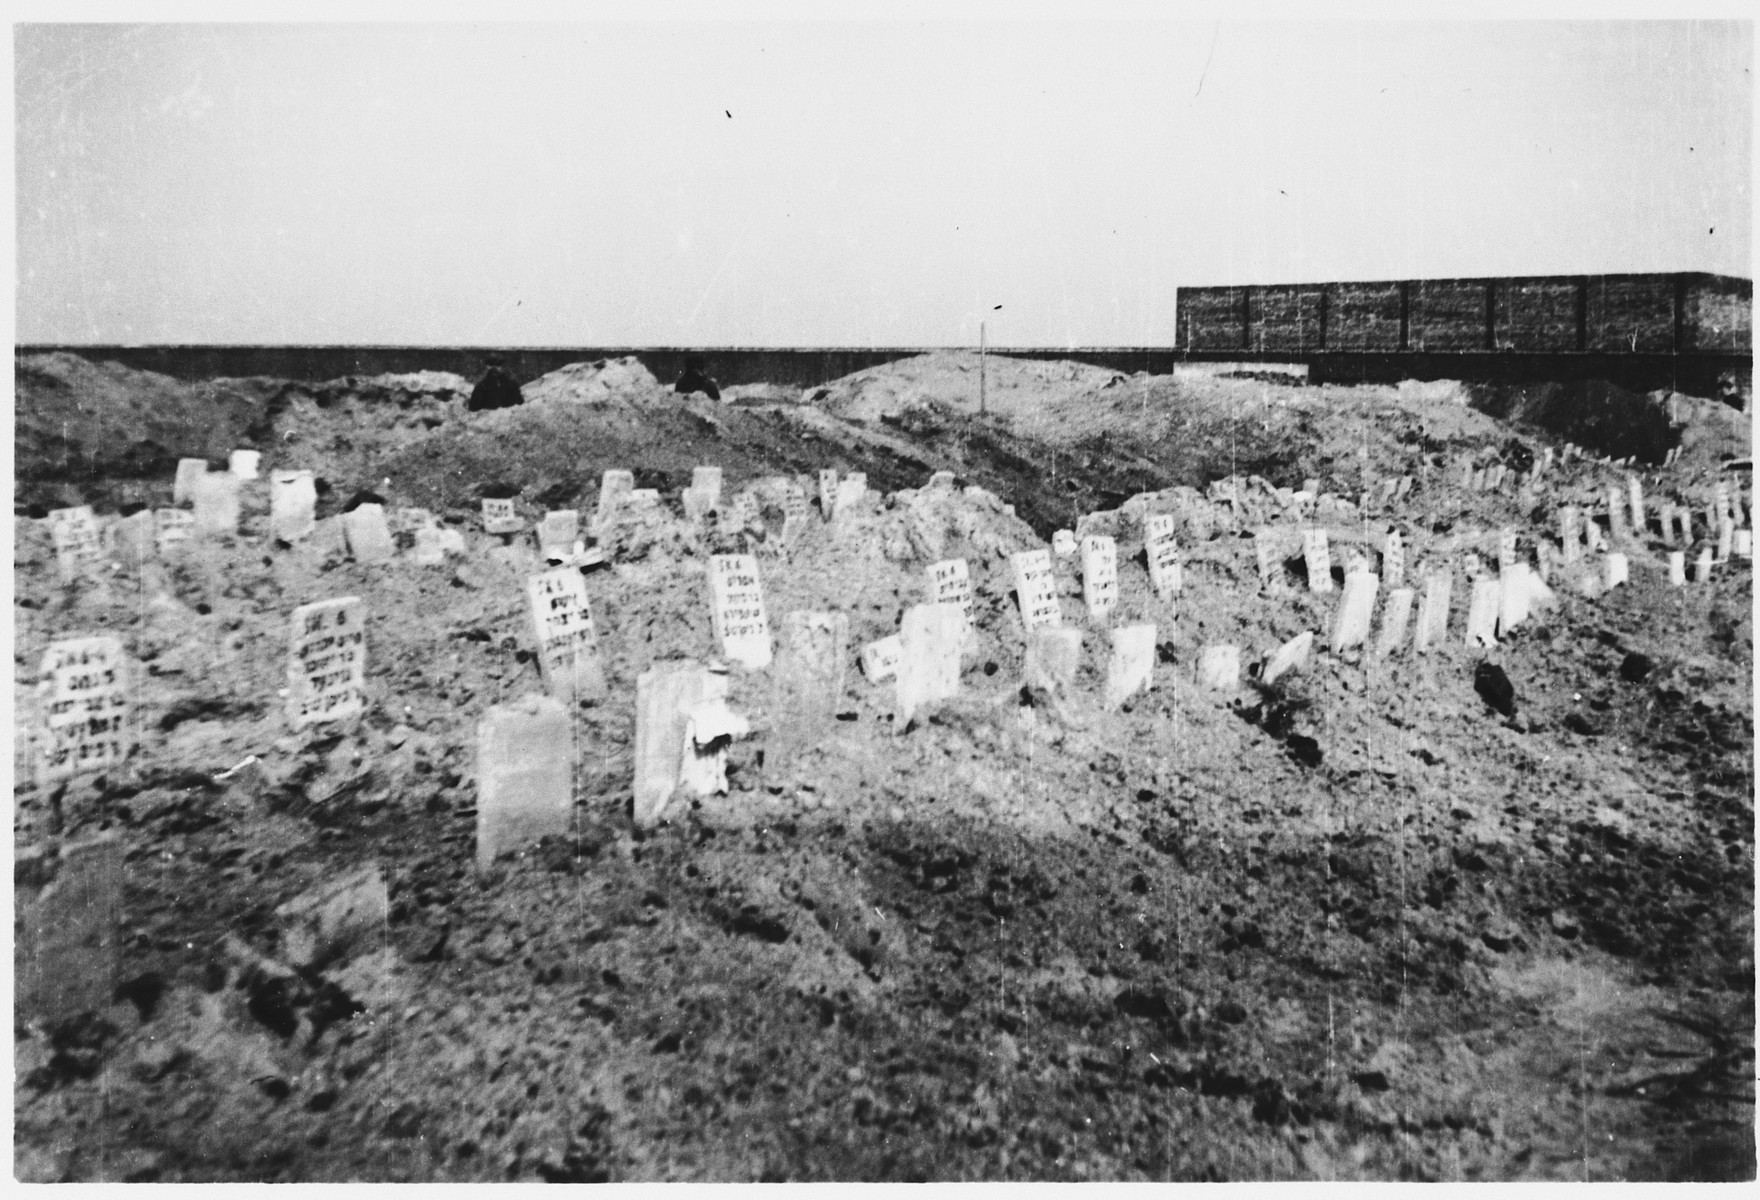 Makeshift tombstones mark the mass grave of Jewish victims in the Warsaw ghetto.